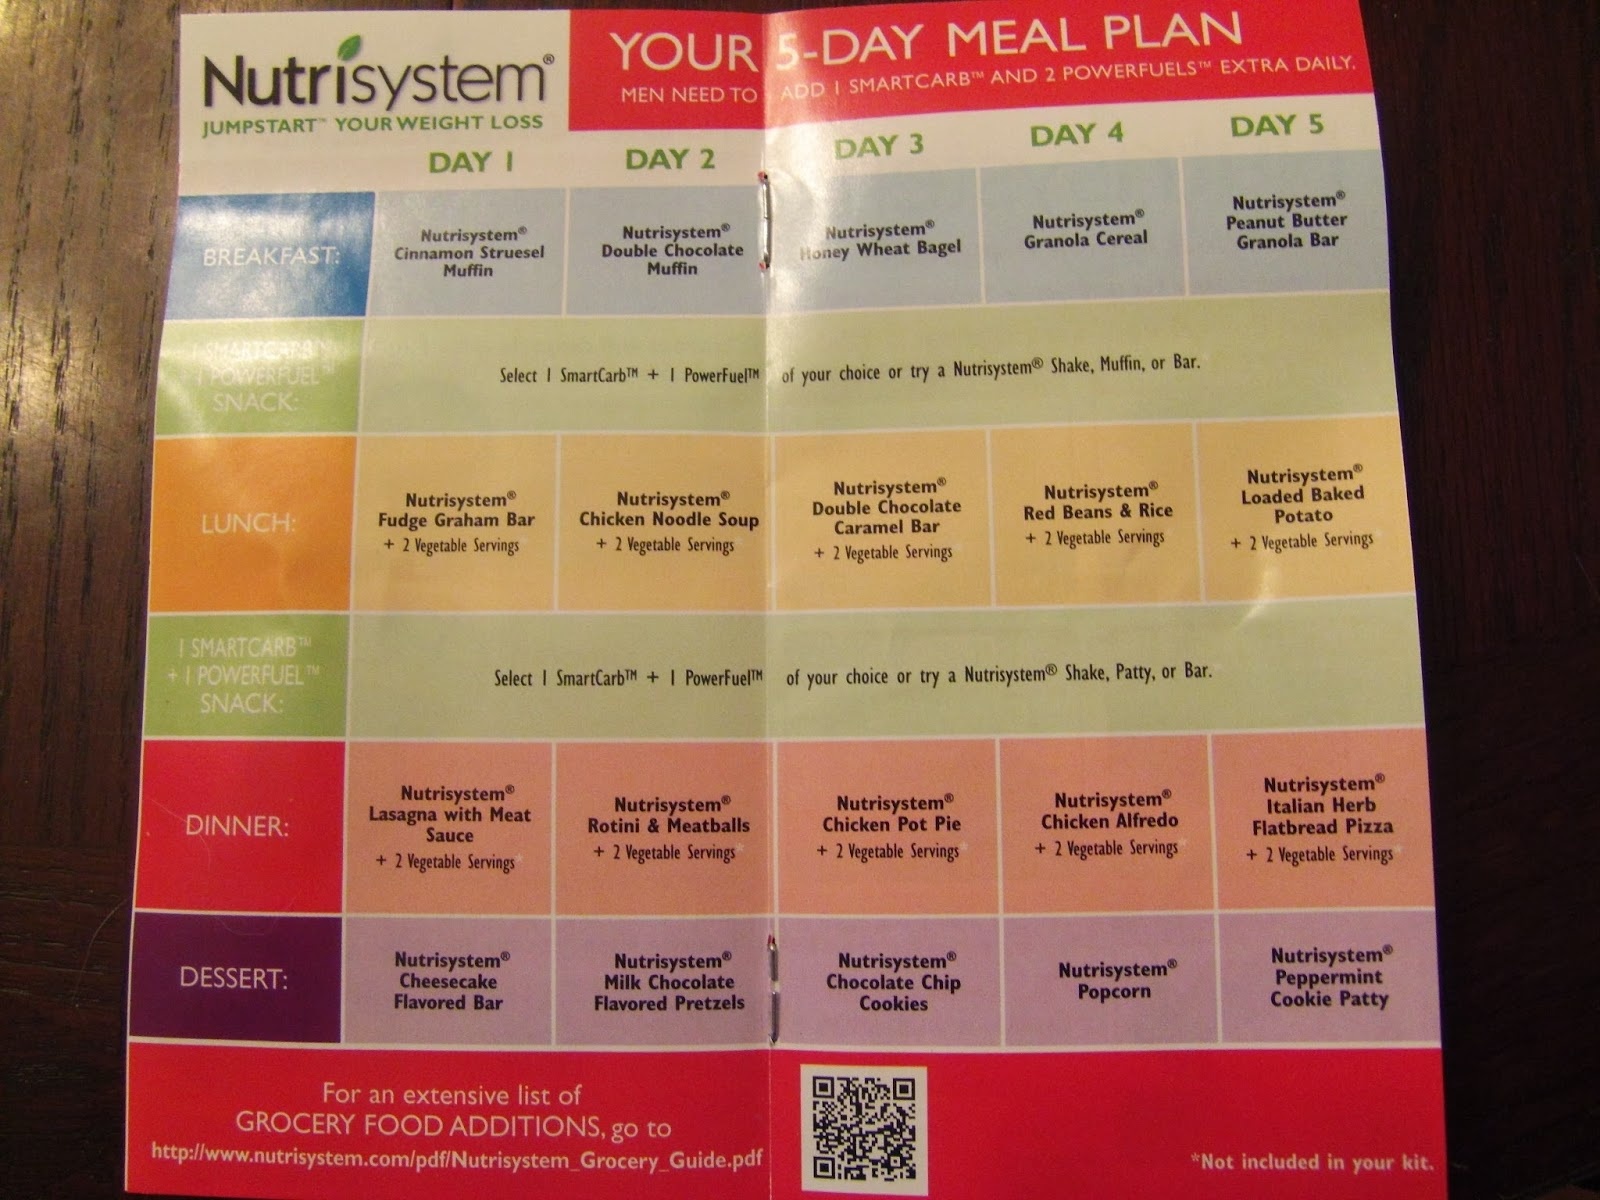 NutriSystem now offers fresh, frozen foods like ice cream and pizza.